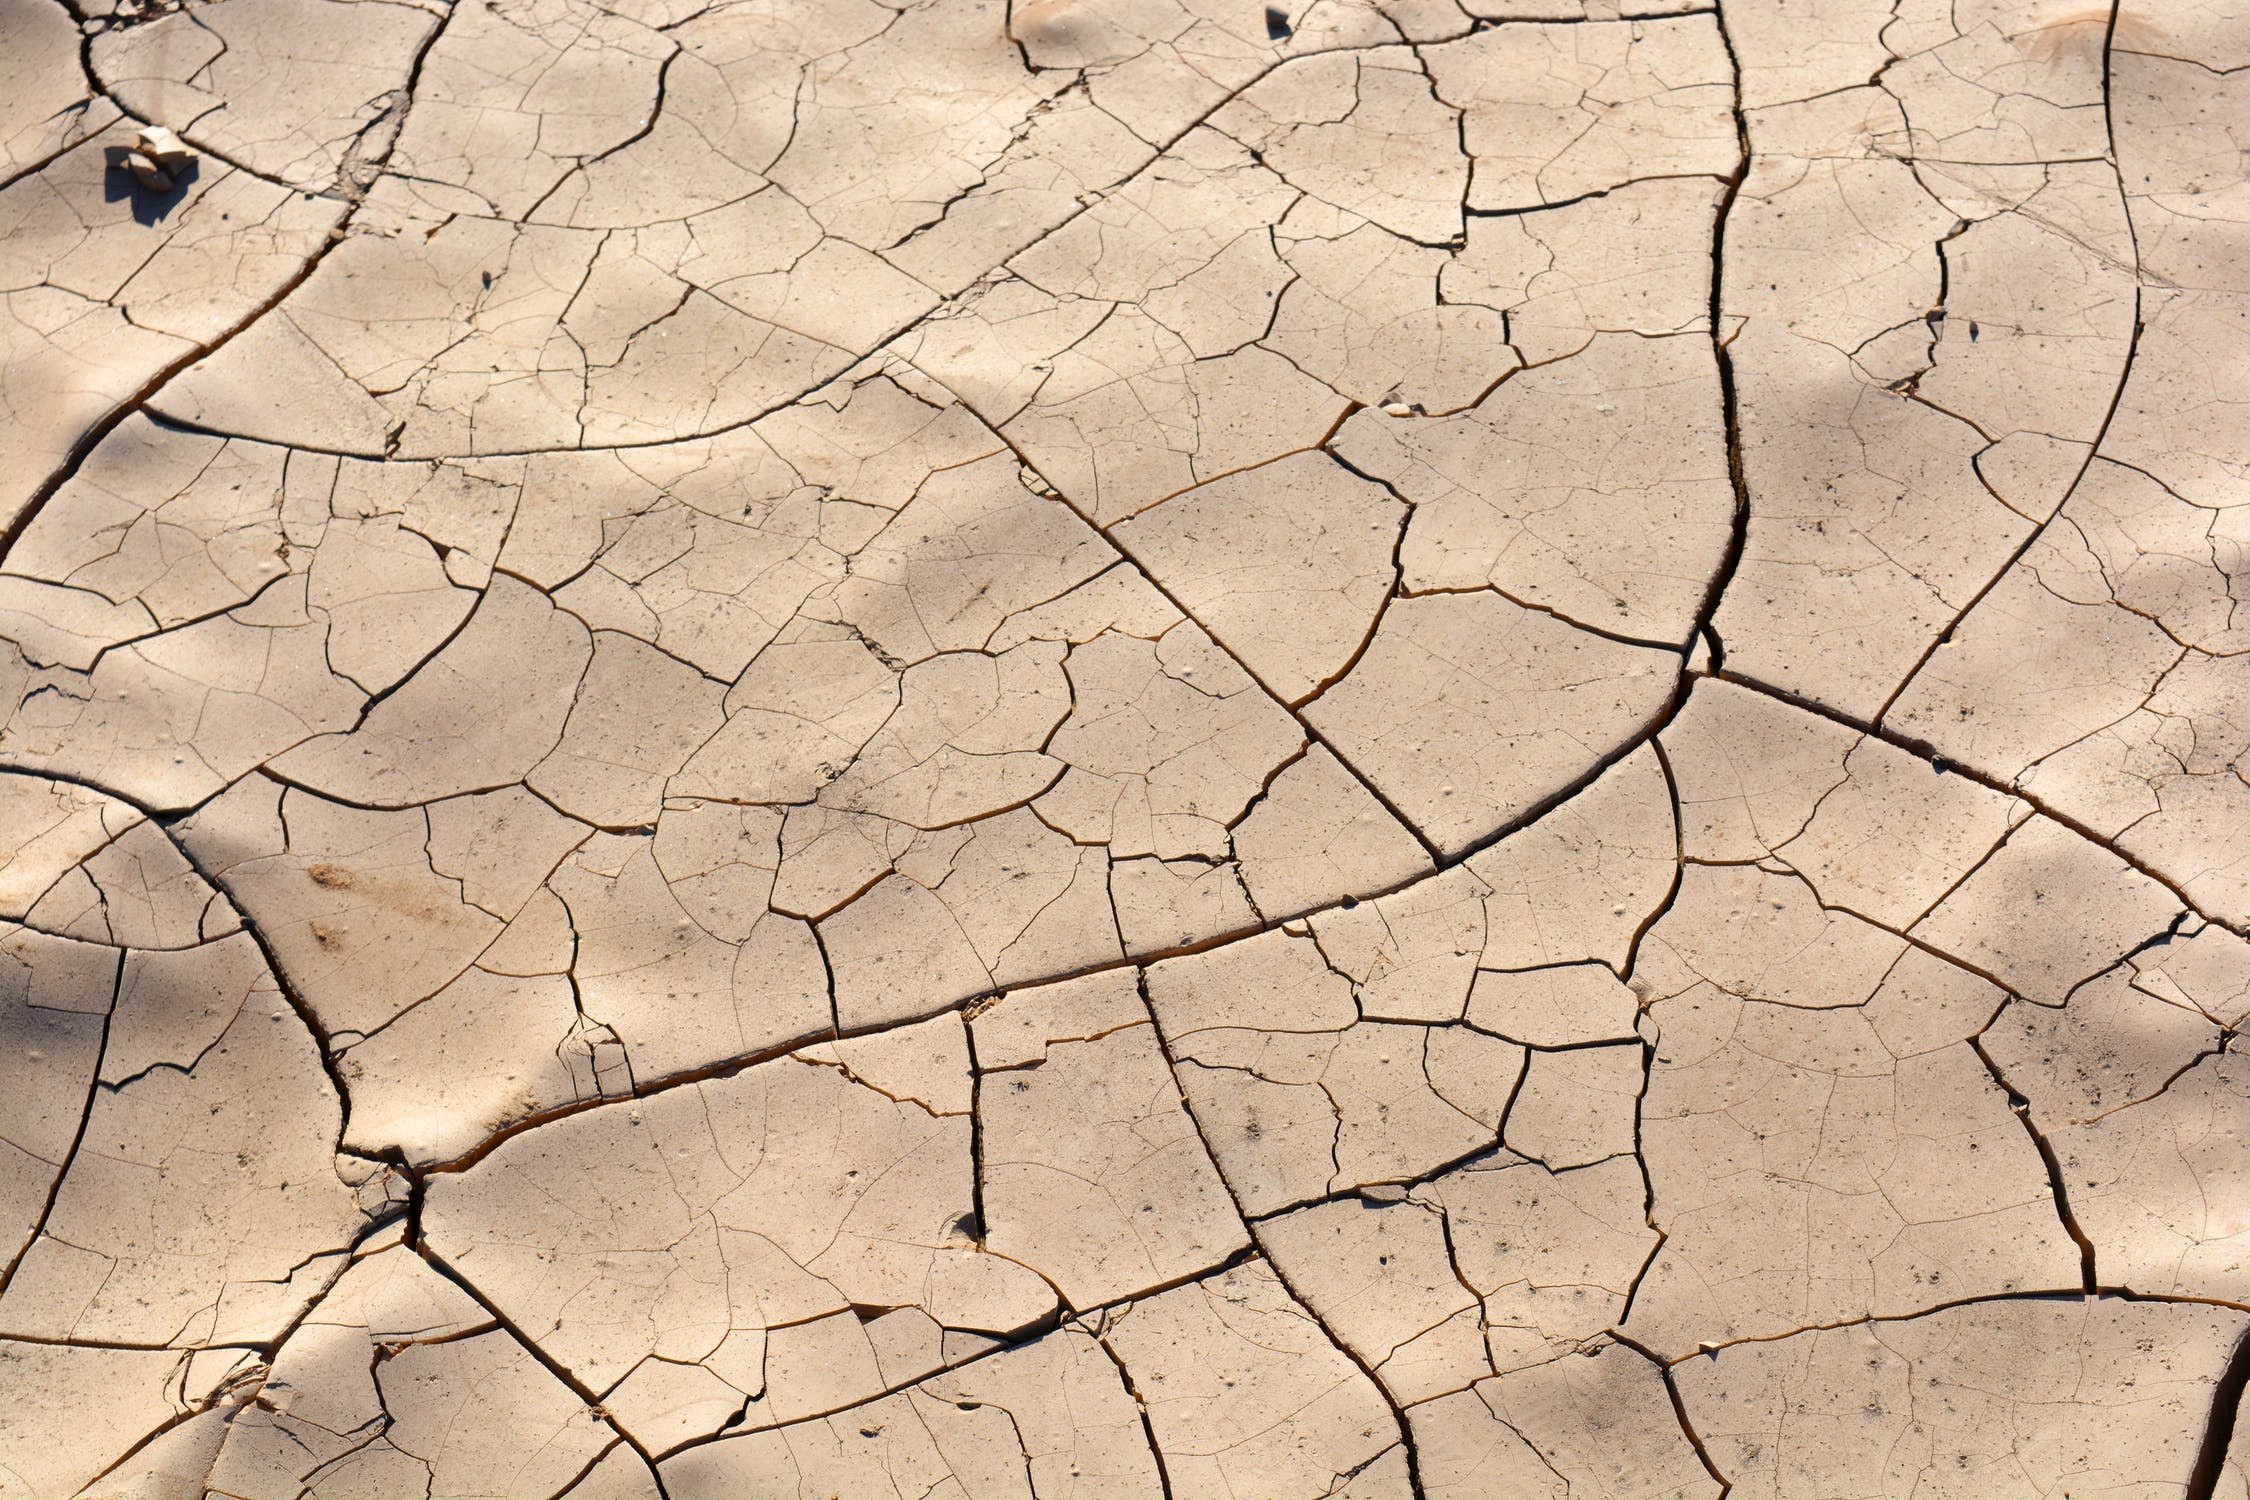 Gavin Newsom Extends Drought State of Emergency in California